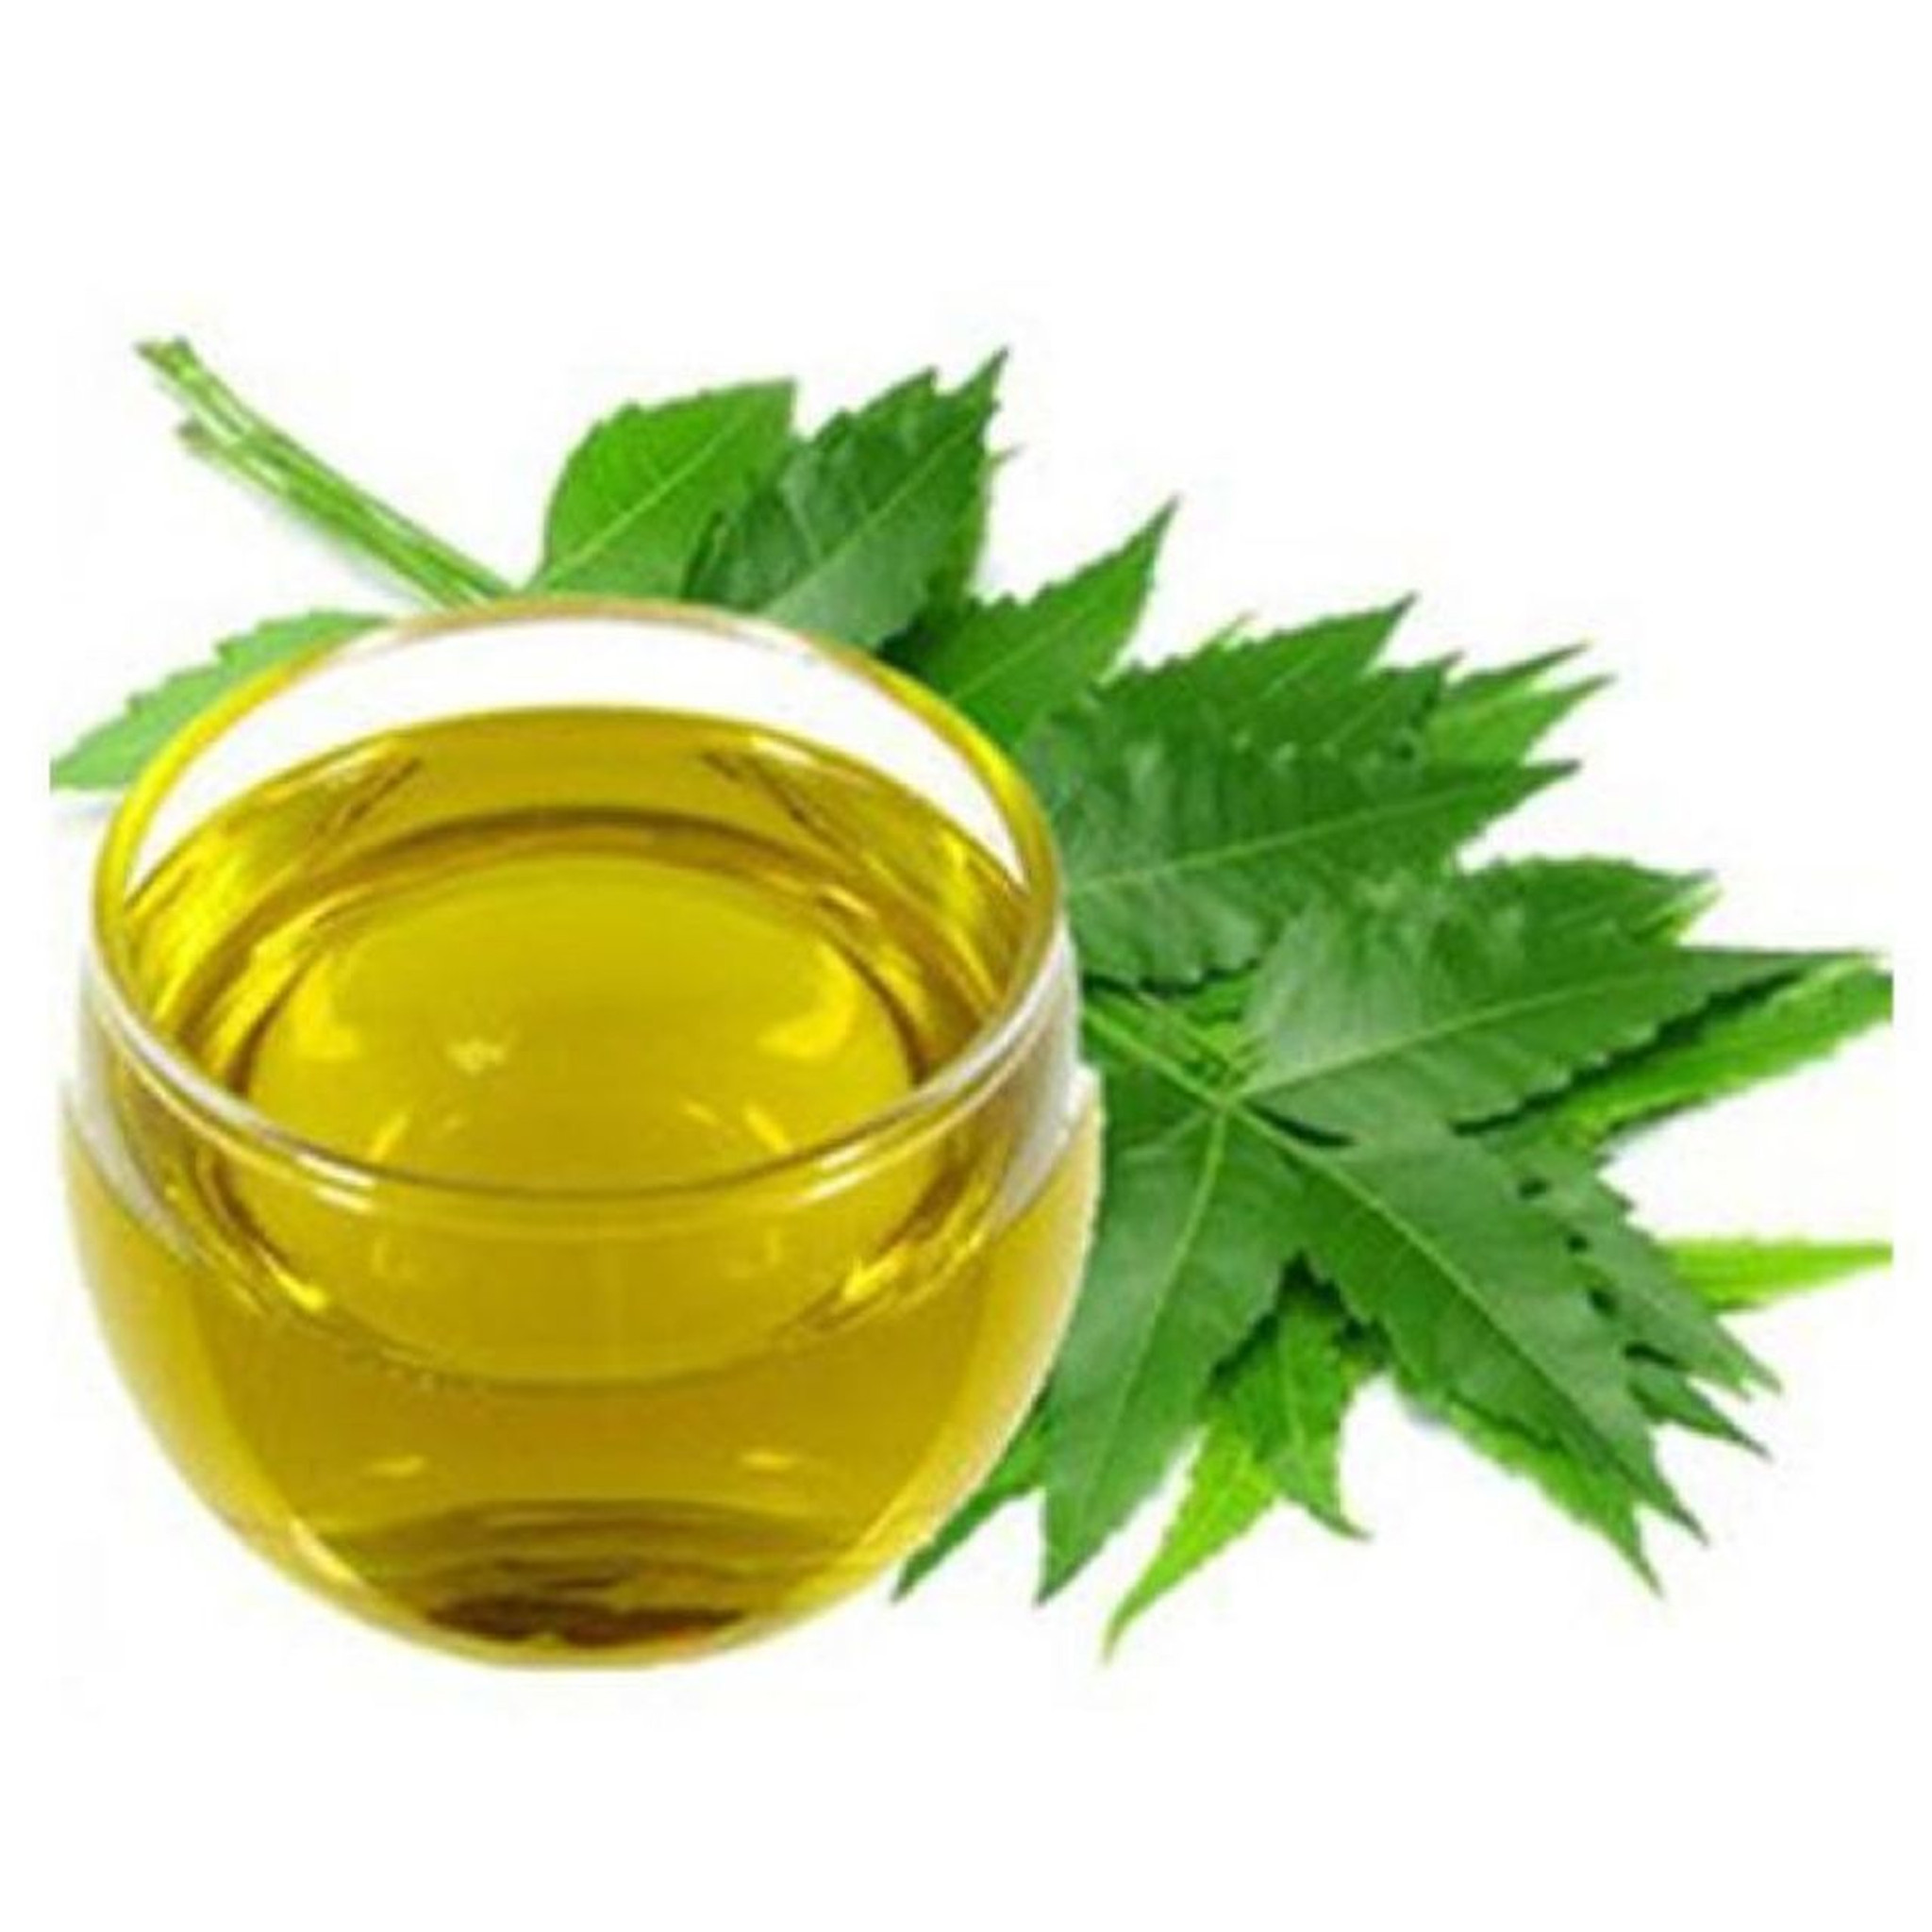 The Extremely Versatile Neem Oil